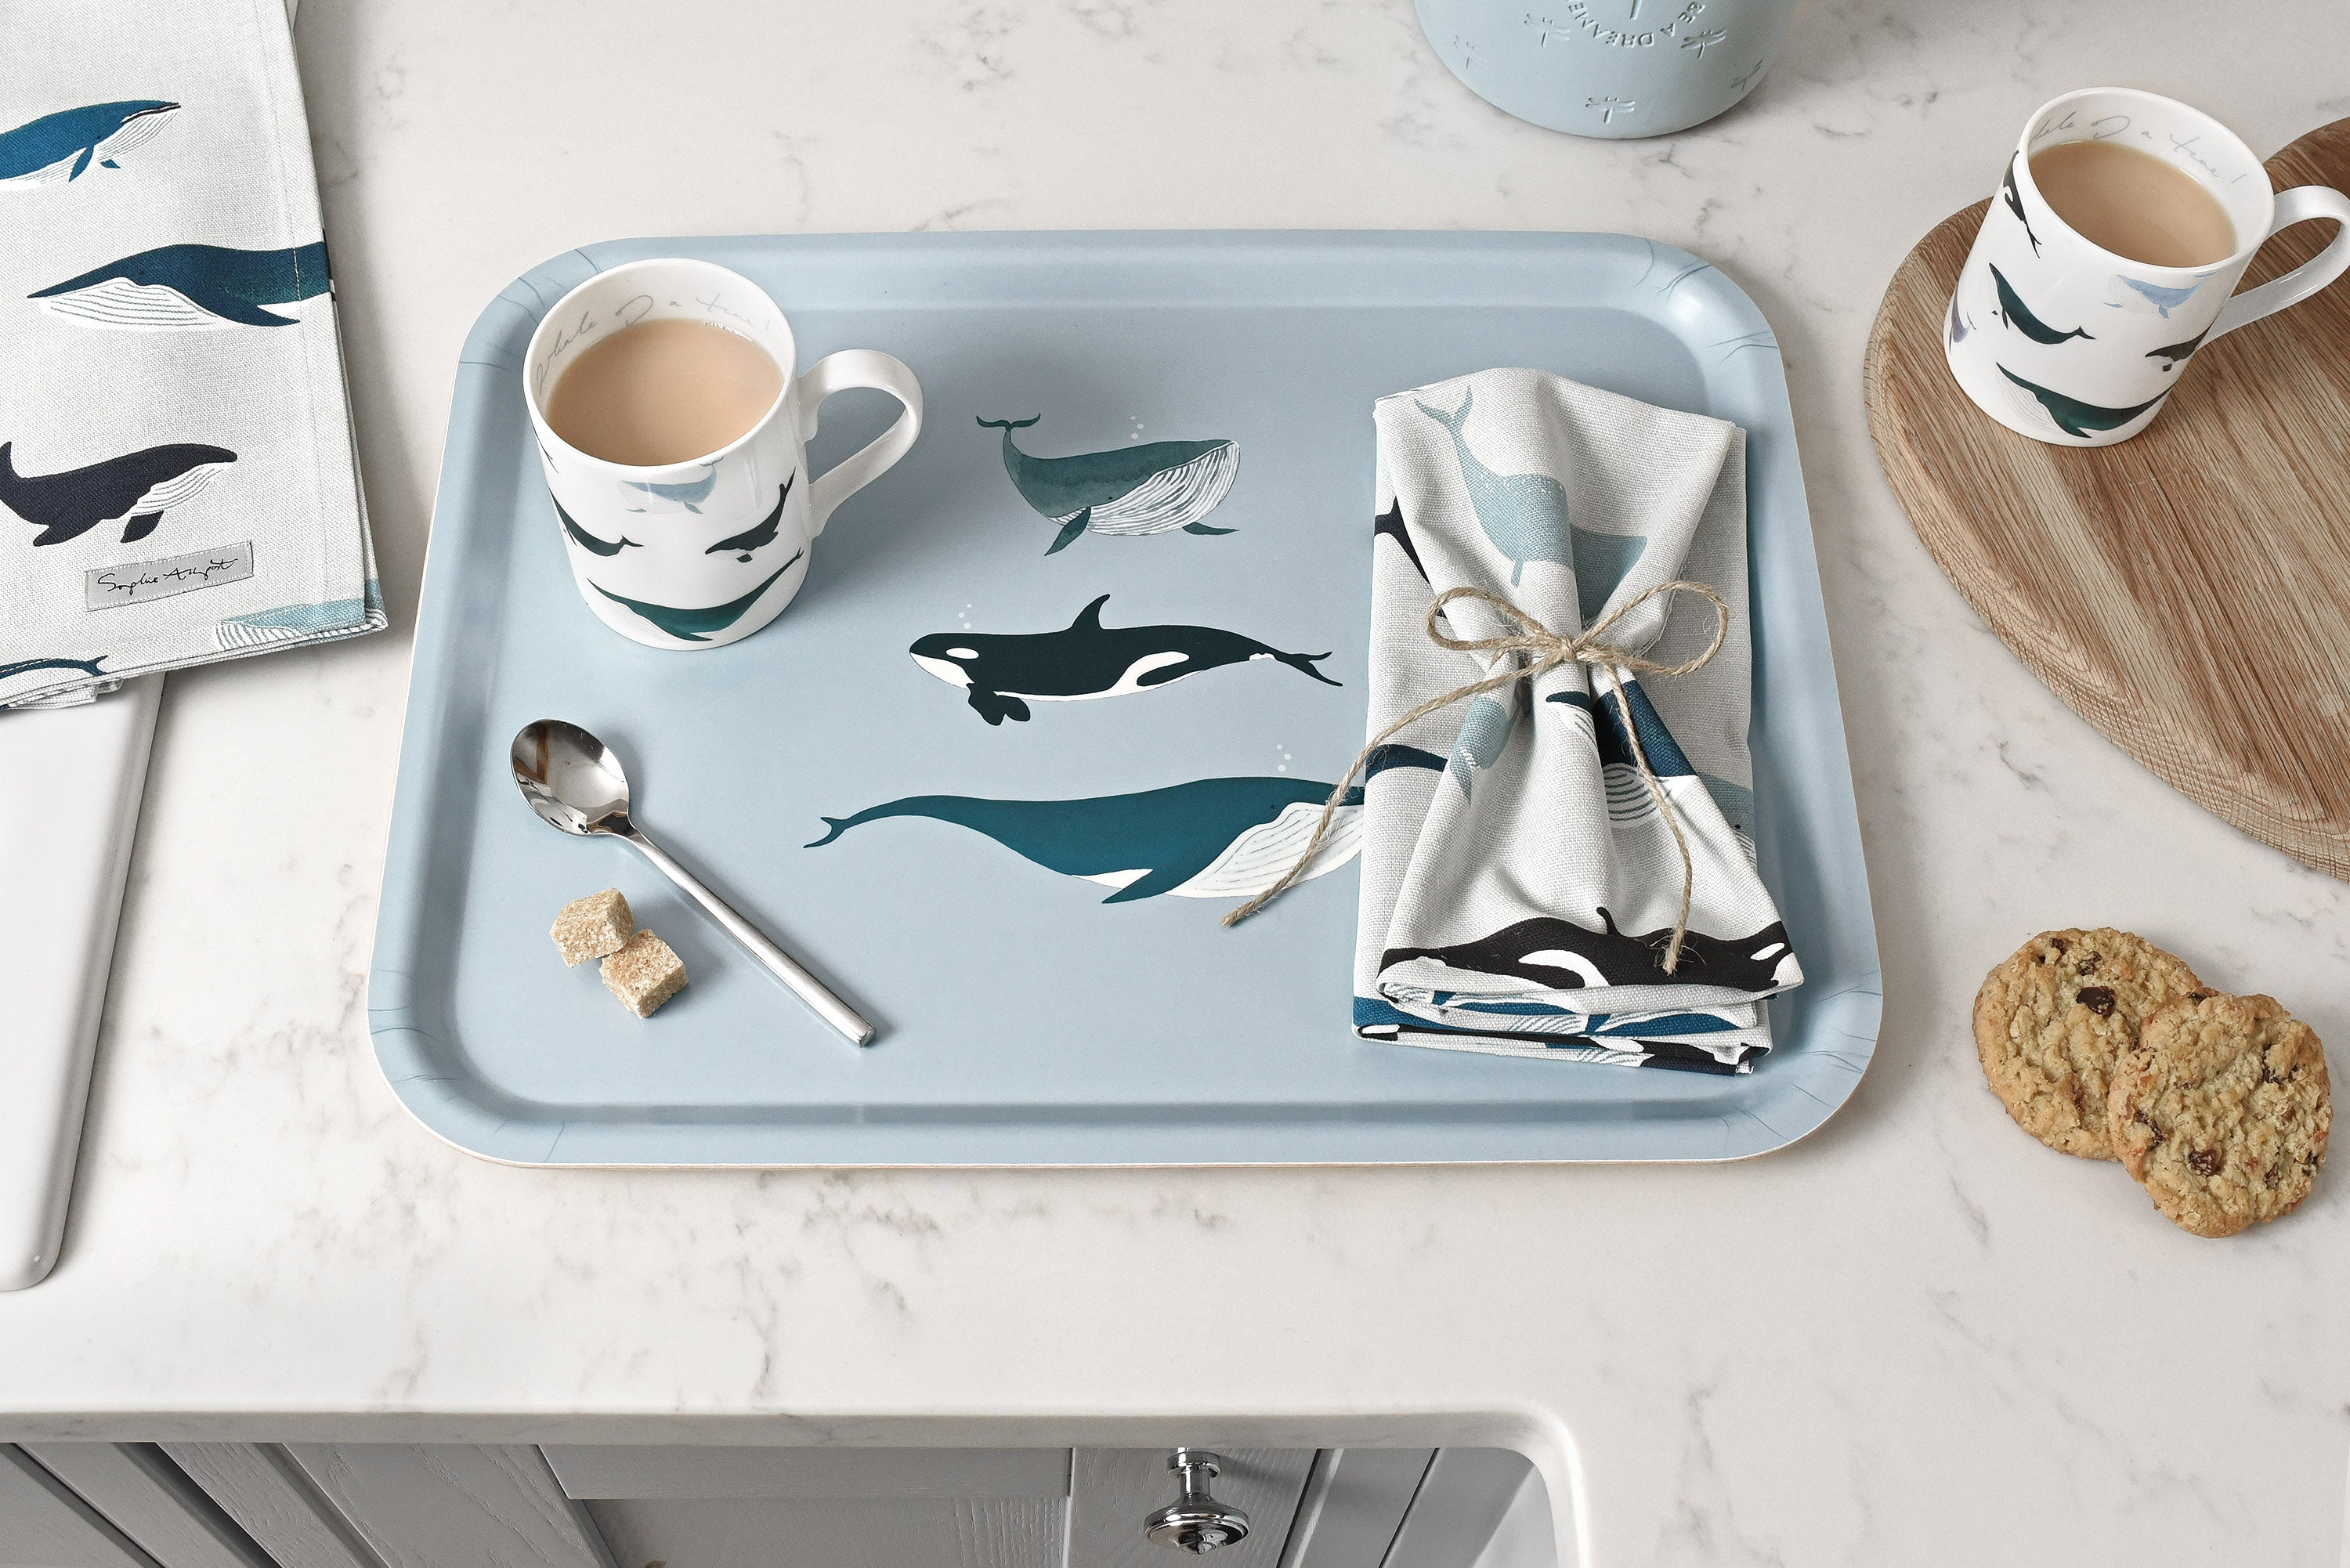 Whales printed tray and napkins by Sophie Allport